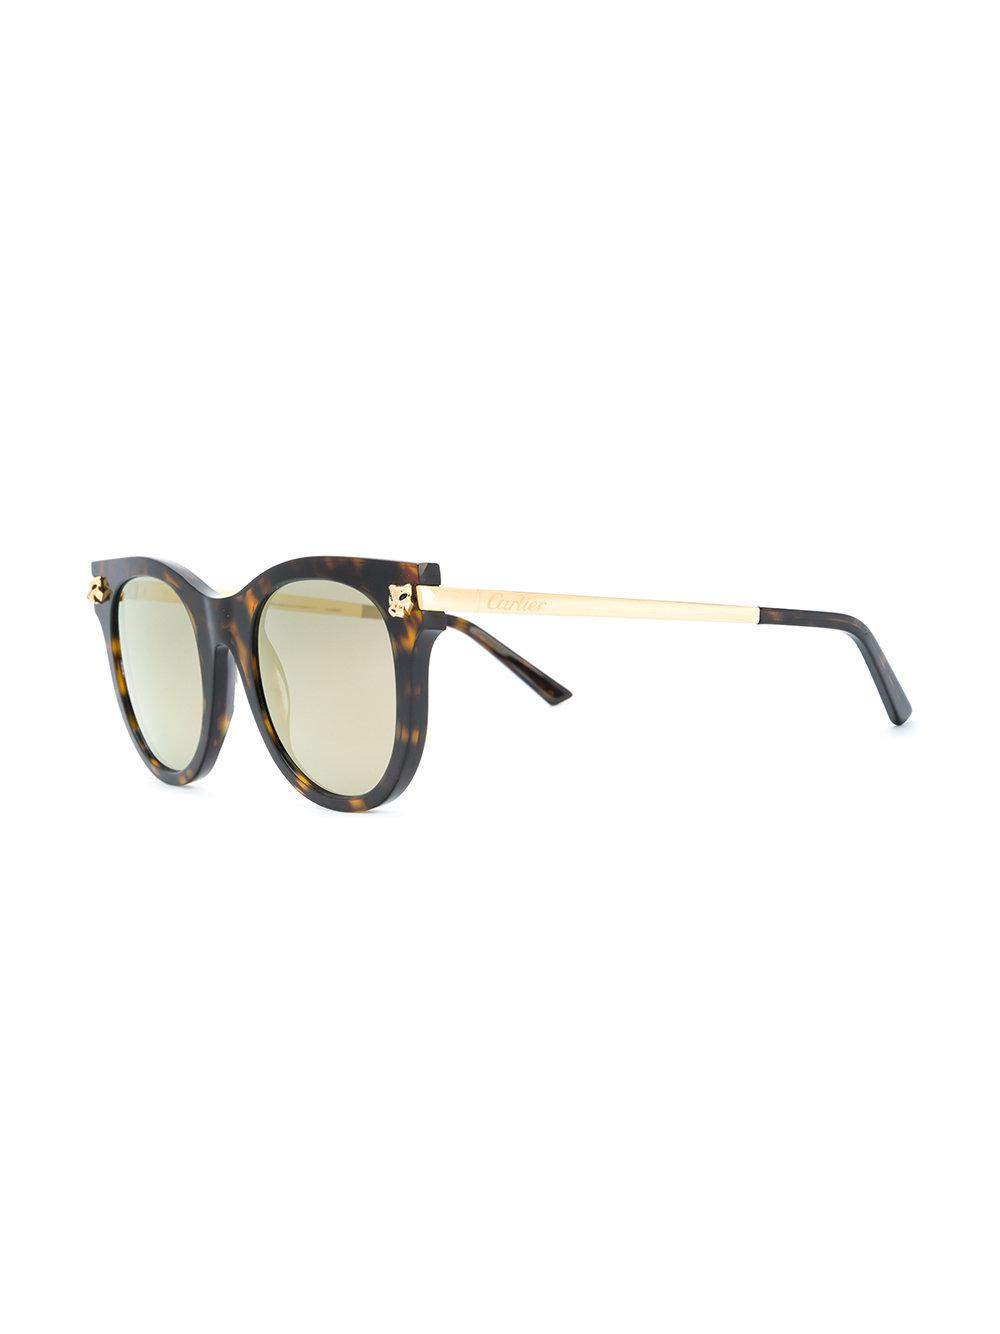 d7894367b8f9f Cartier Oversized Panther Sunglasses in Brown - Lyst